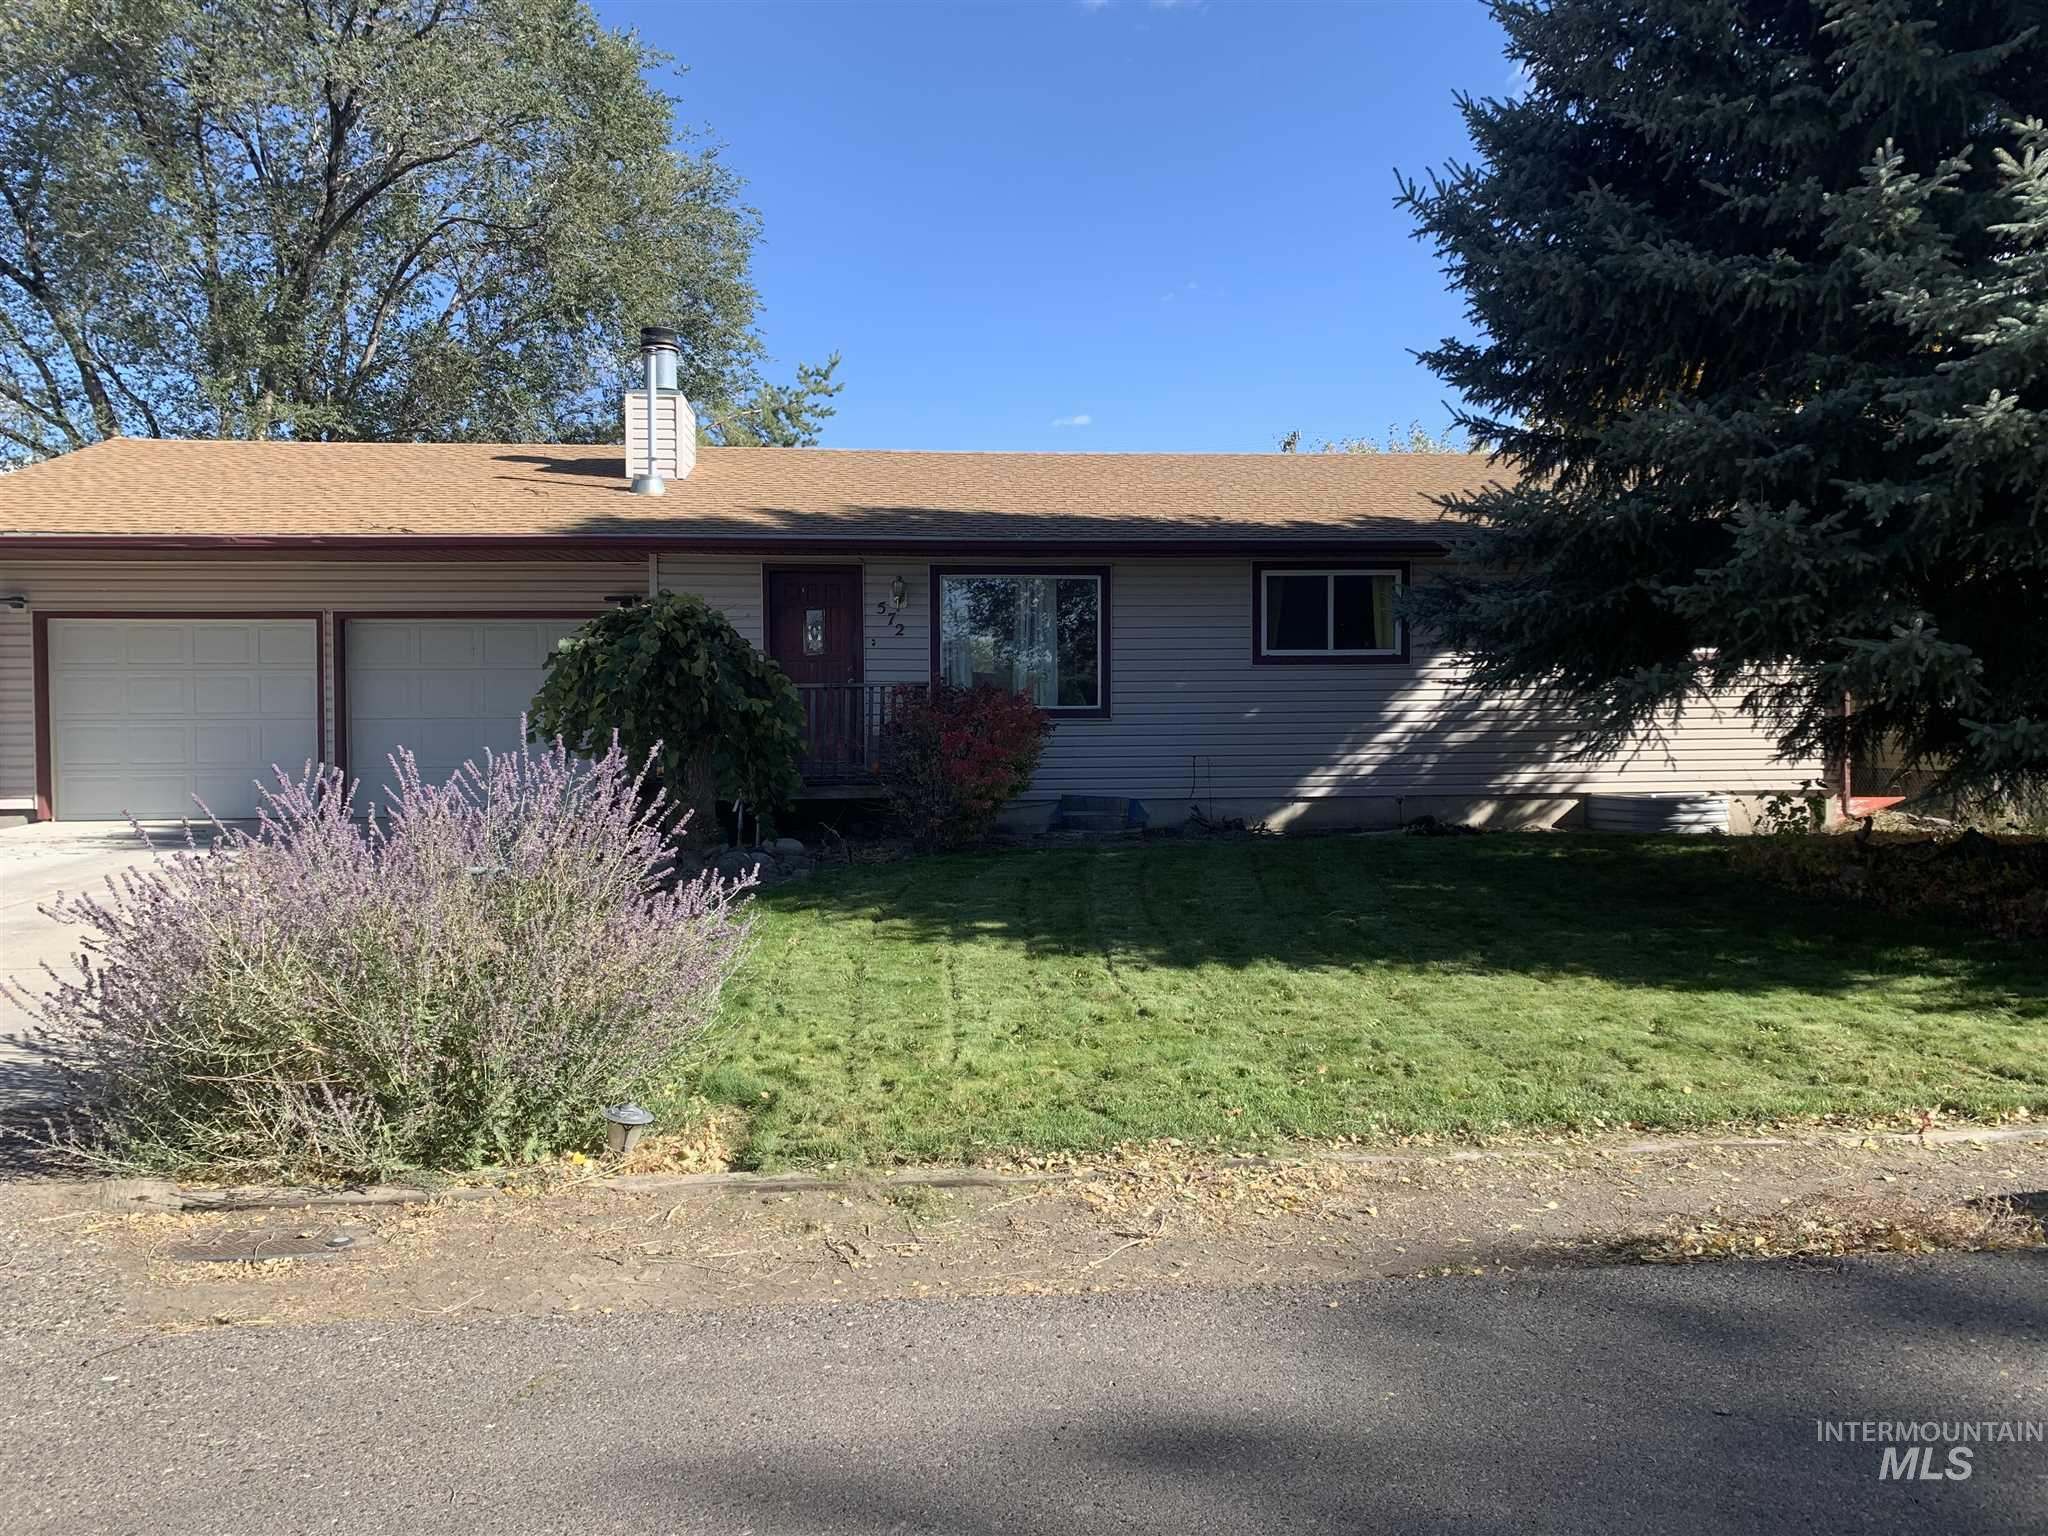 572 Tyler Street, Twin Falls, Idaho 83301, 5 Bedrooms, 3 Bathrooms, Residential For Sale, Price $265,000, 98785153